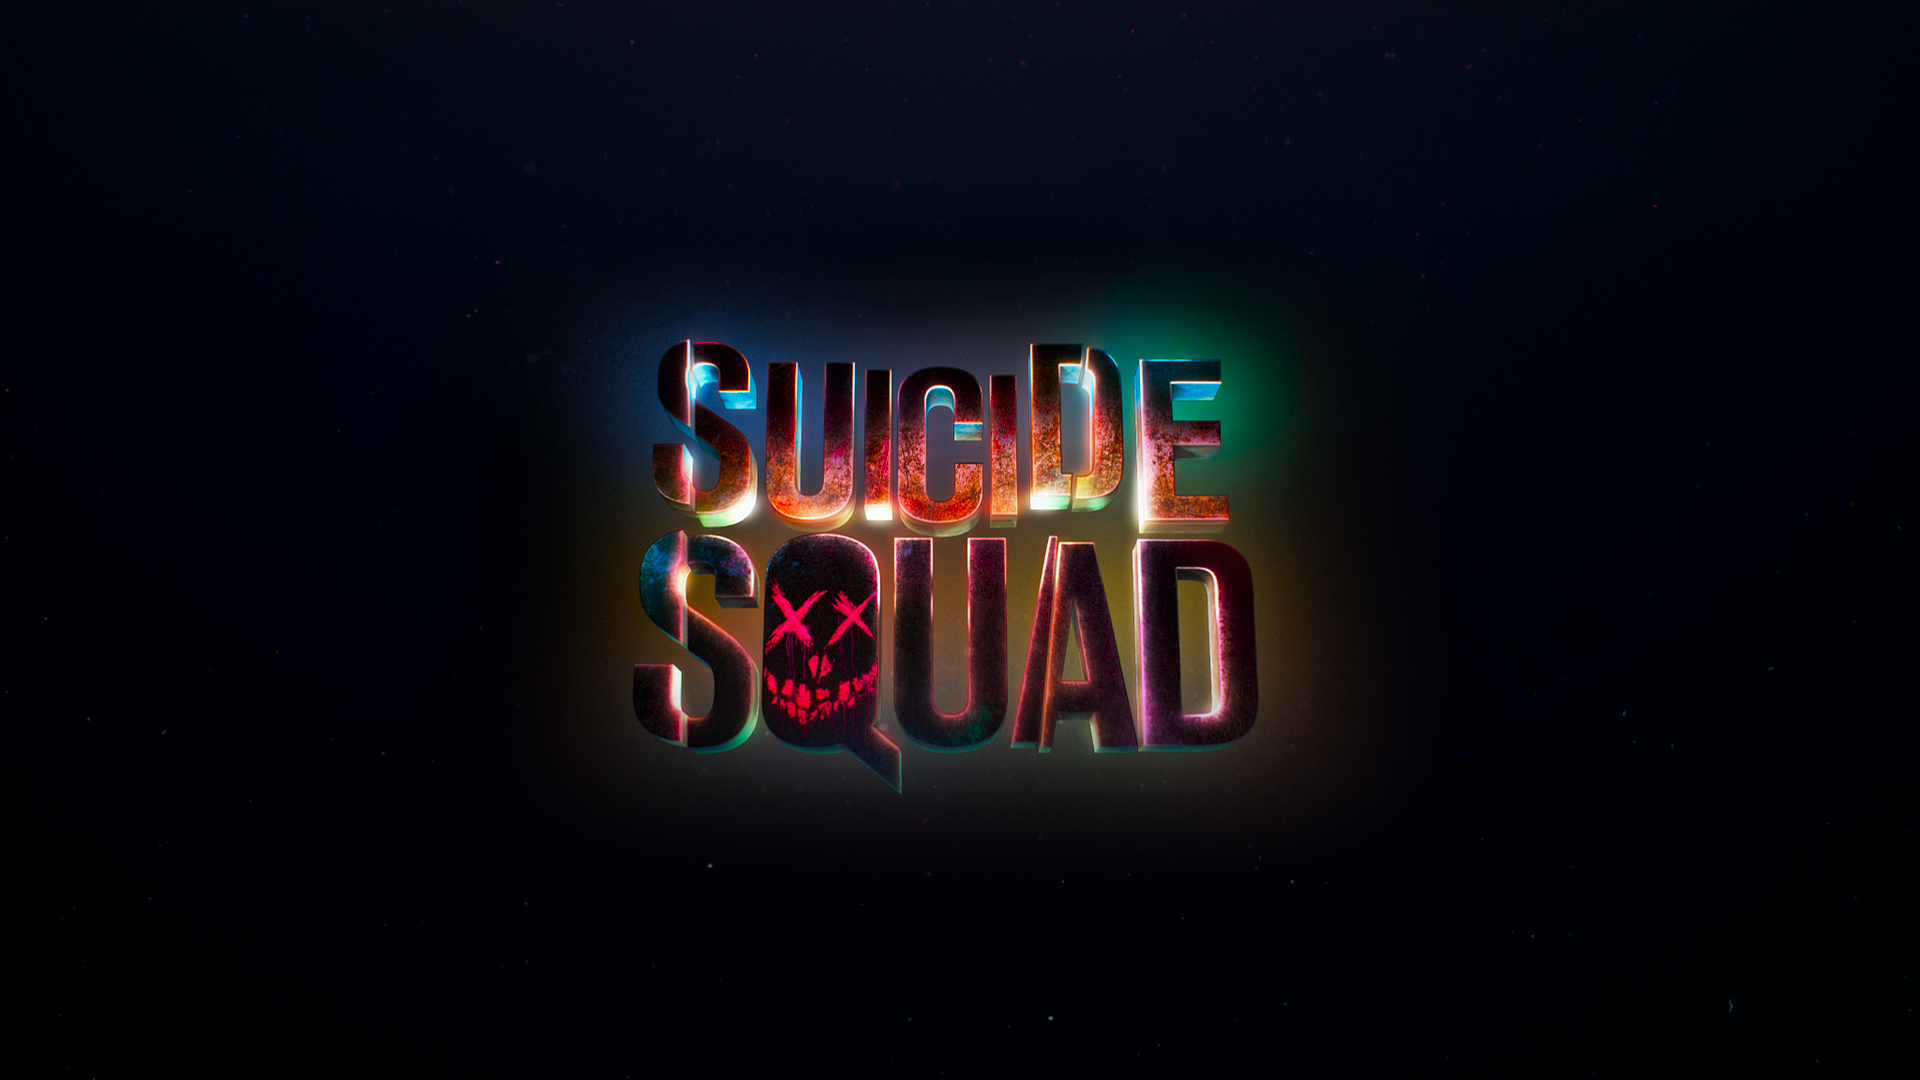 Great Suicide Squad Wallpaper